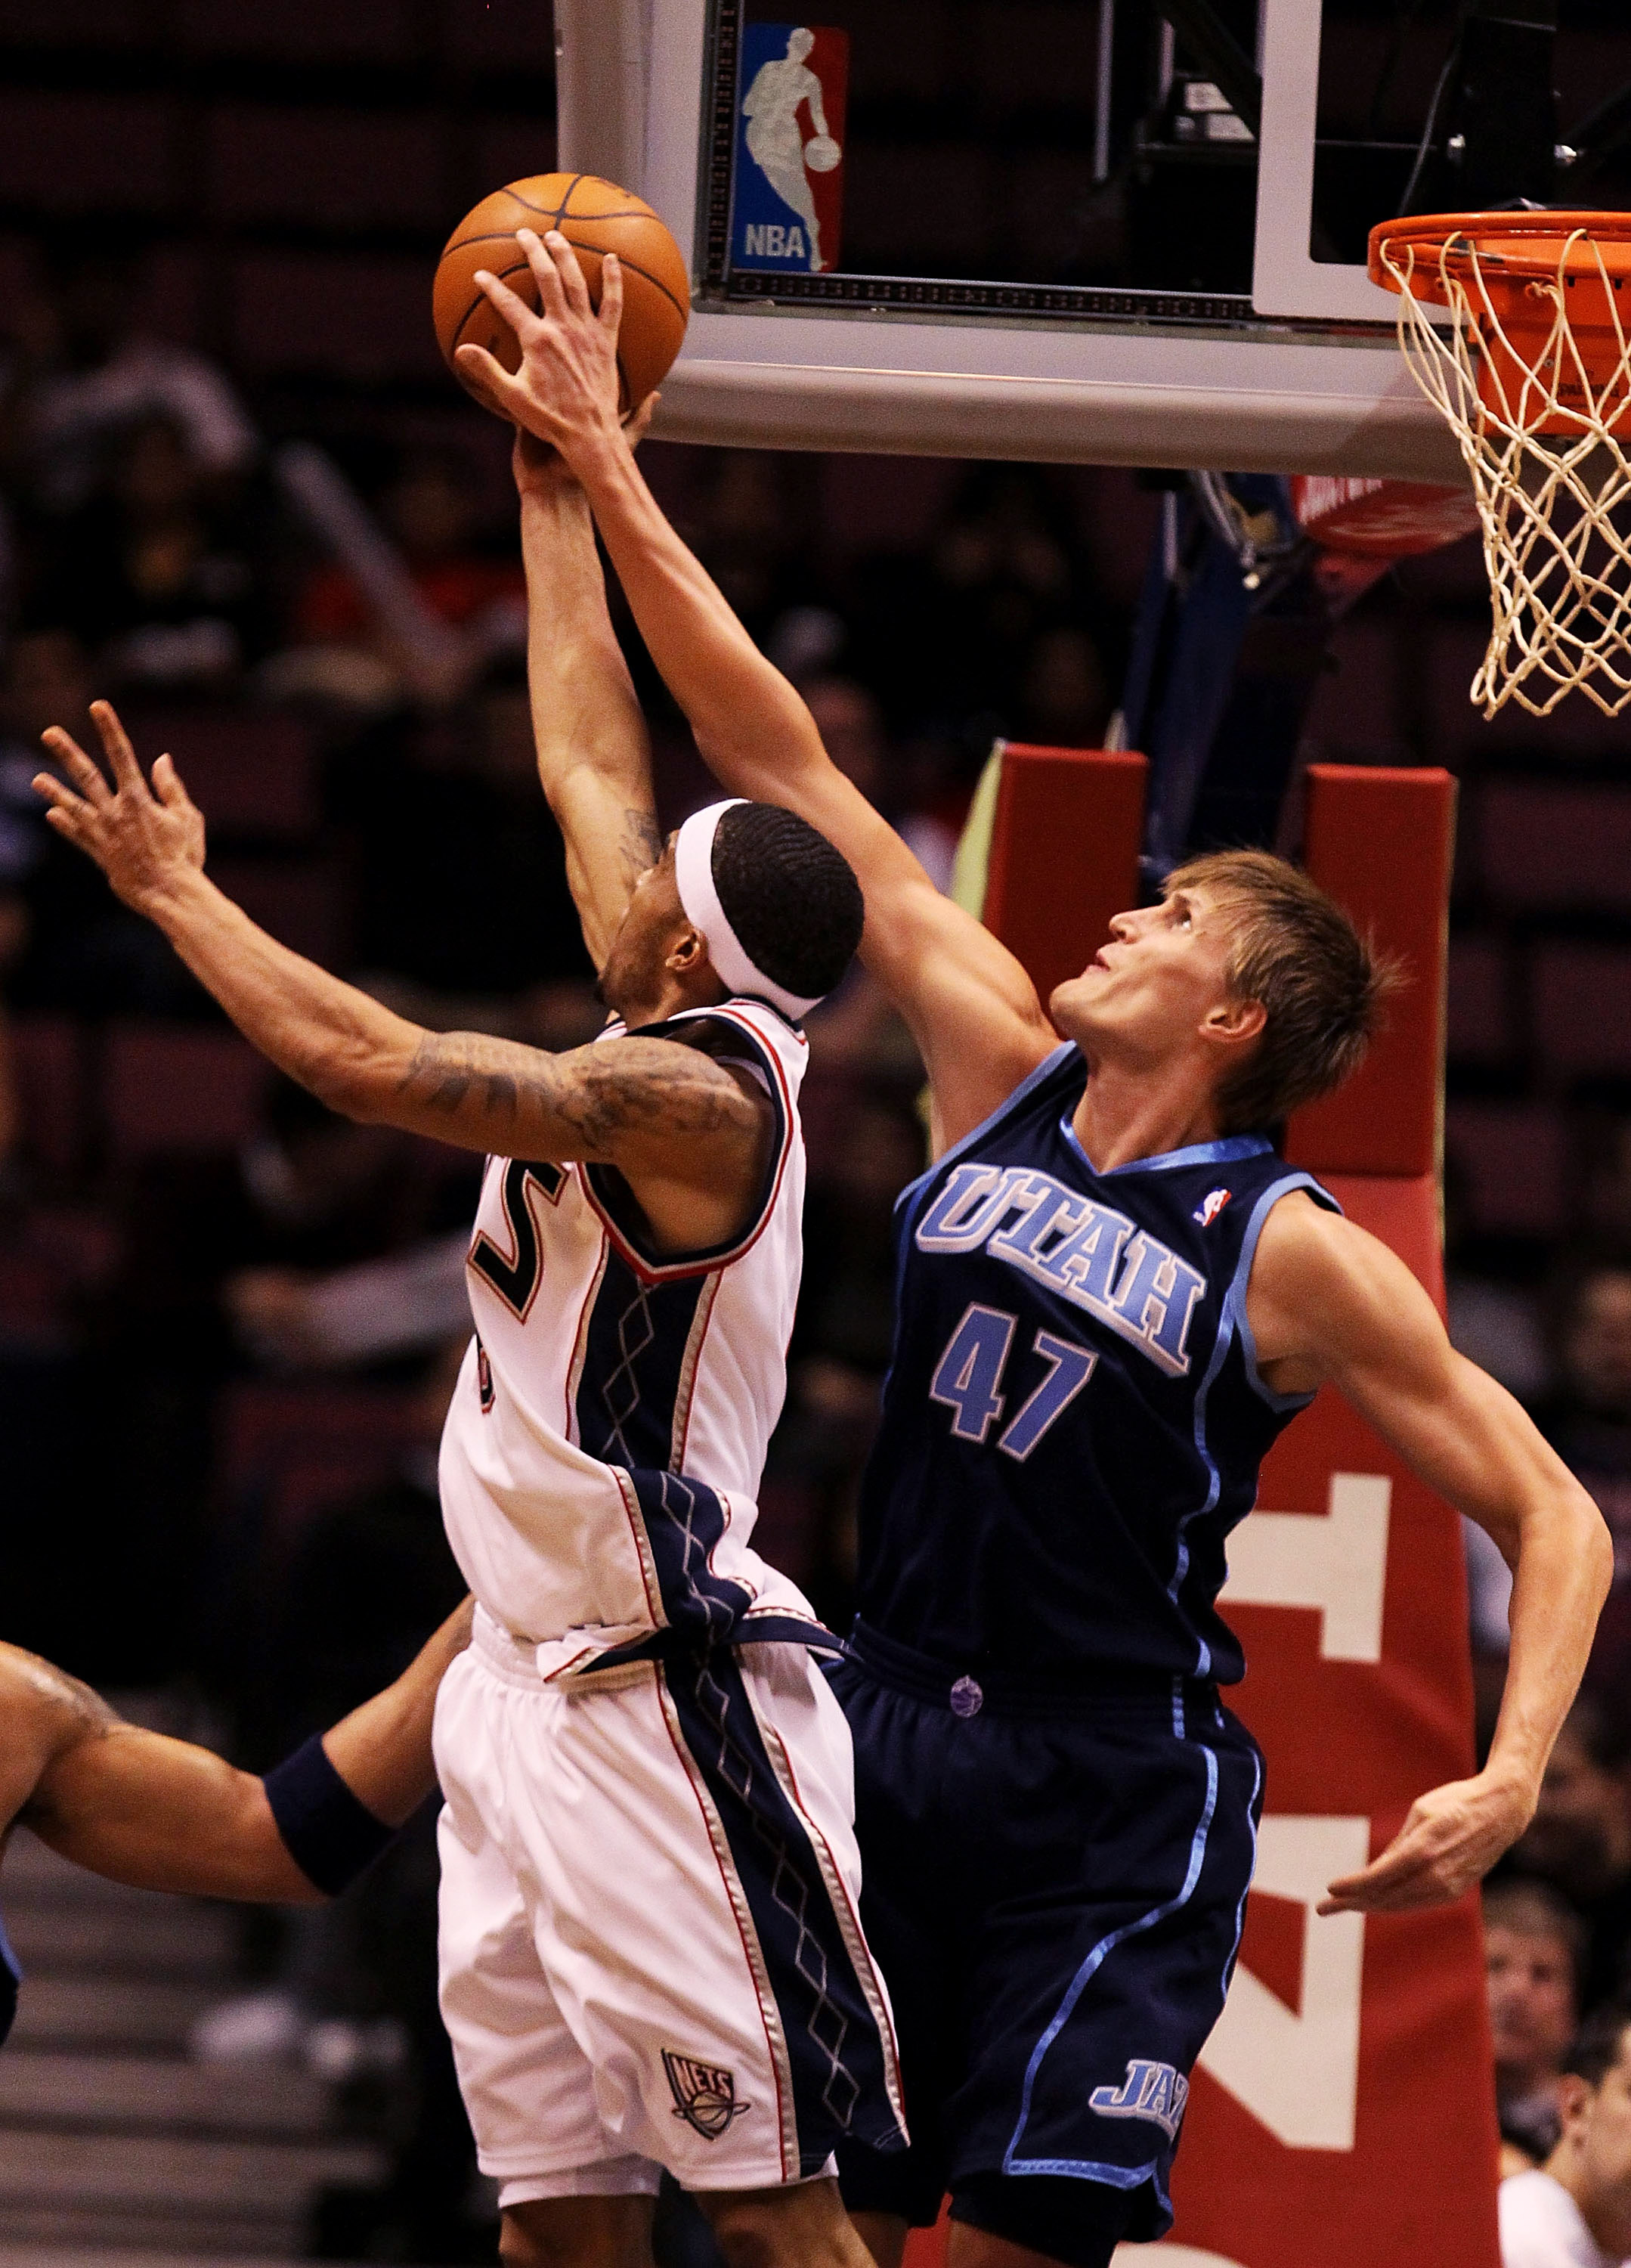 EAST RUTHERFORD, NJ - DECEMBER 16:  Courtney Lee #6 of the New Jersey Nets shoots against Andrei Kirilenko #47 of the Utah Jazz during their game on December 16, 2009 at the IZOD Center in East Rutherford, New Jersey.  NOTE TO USER: User expressly acknowl